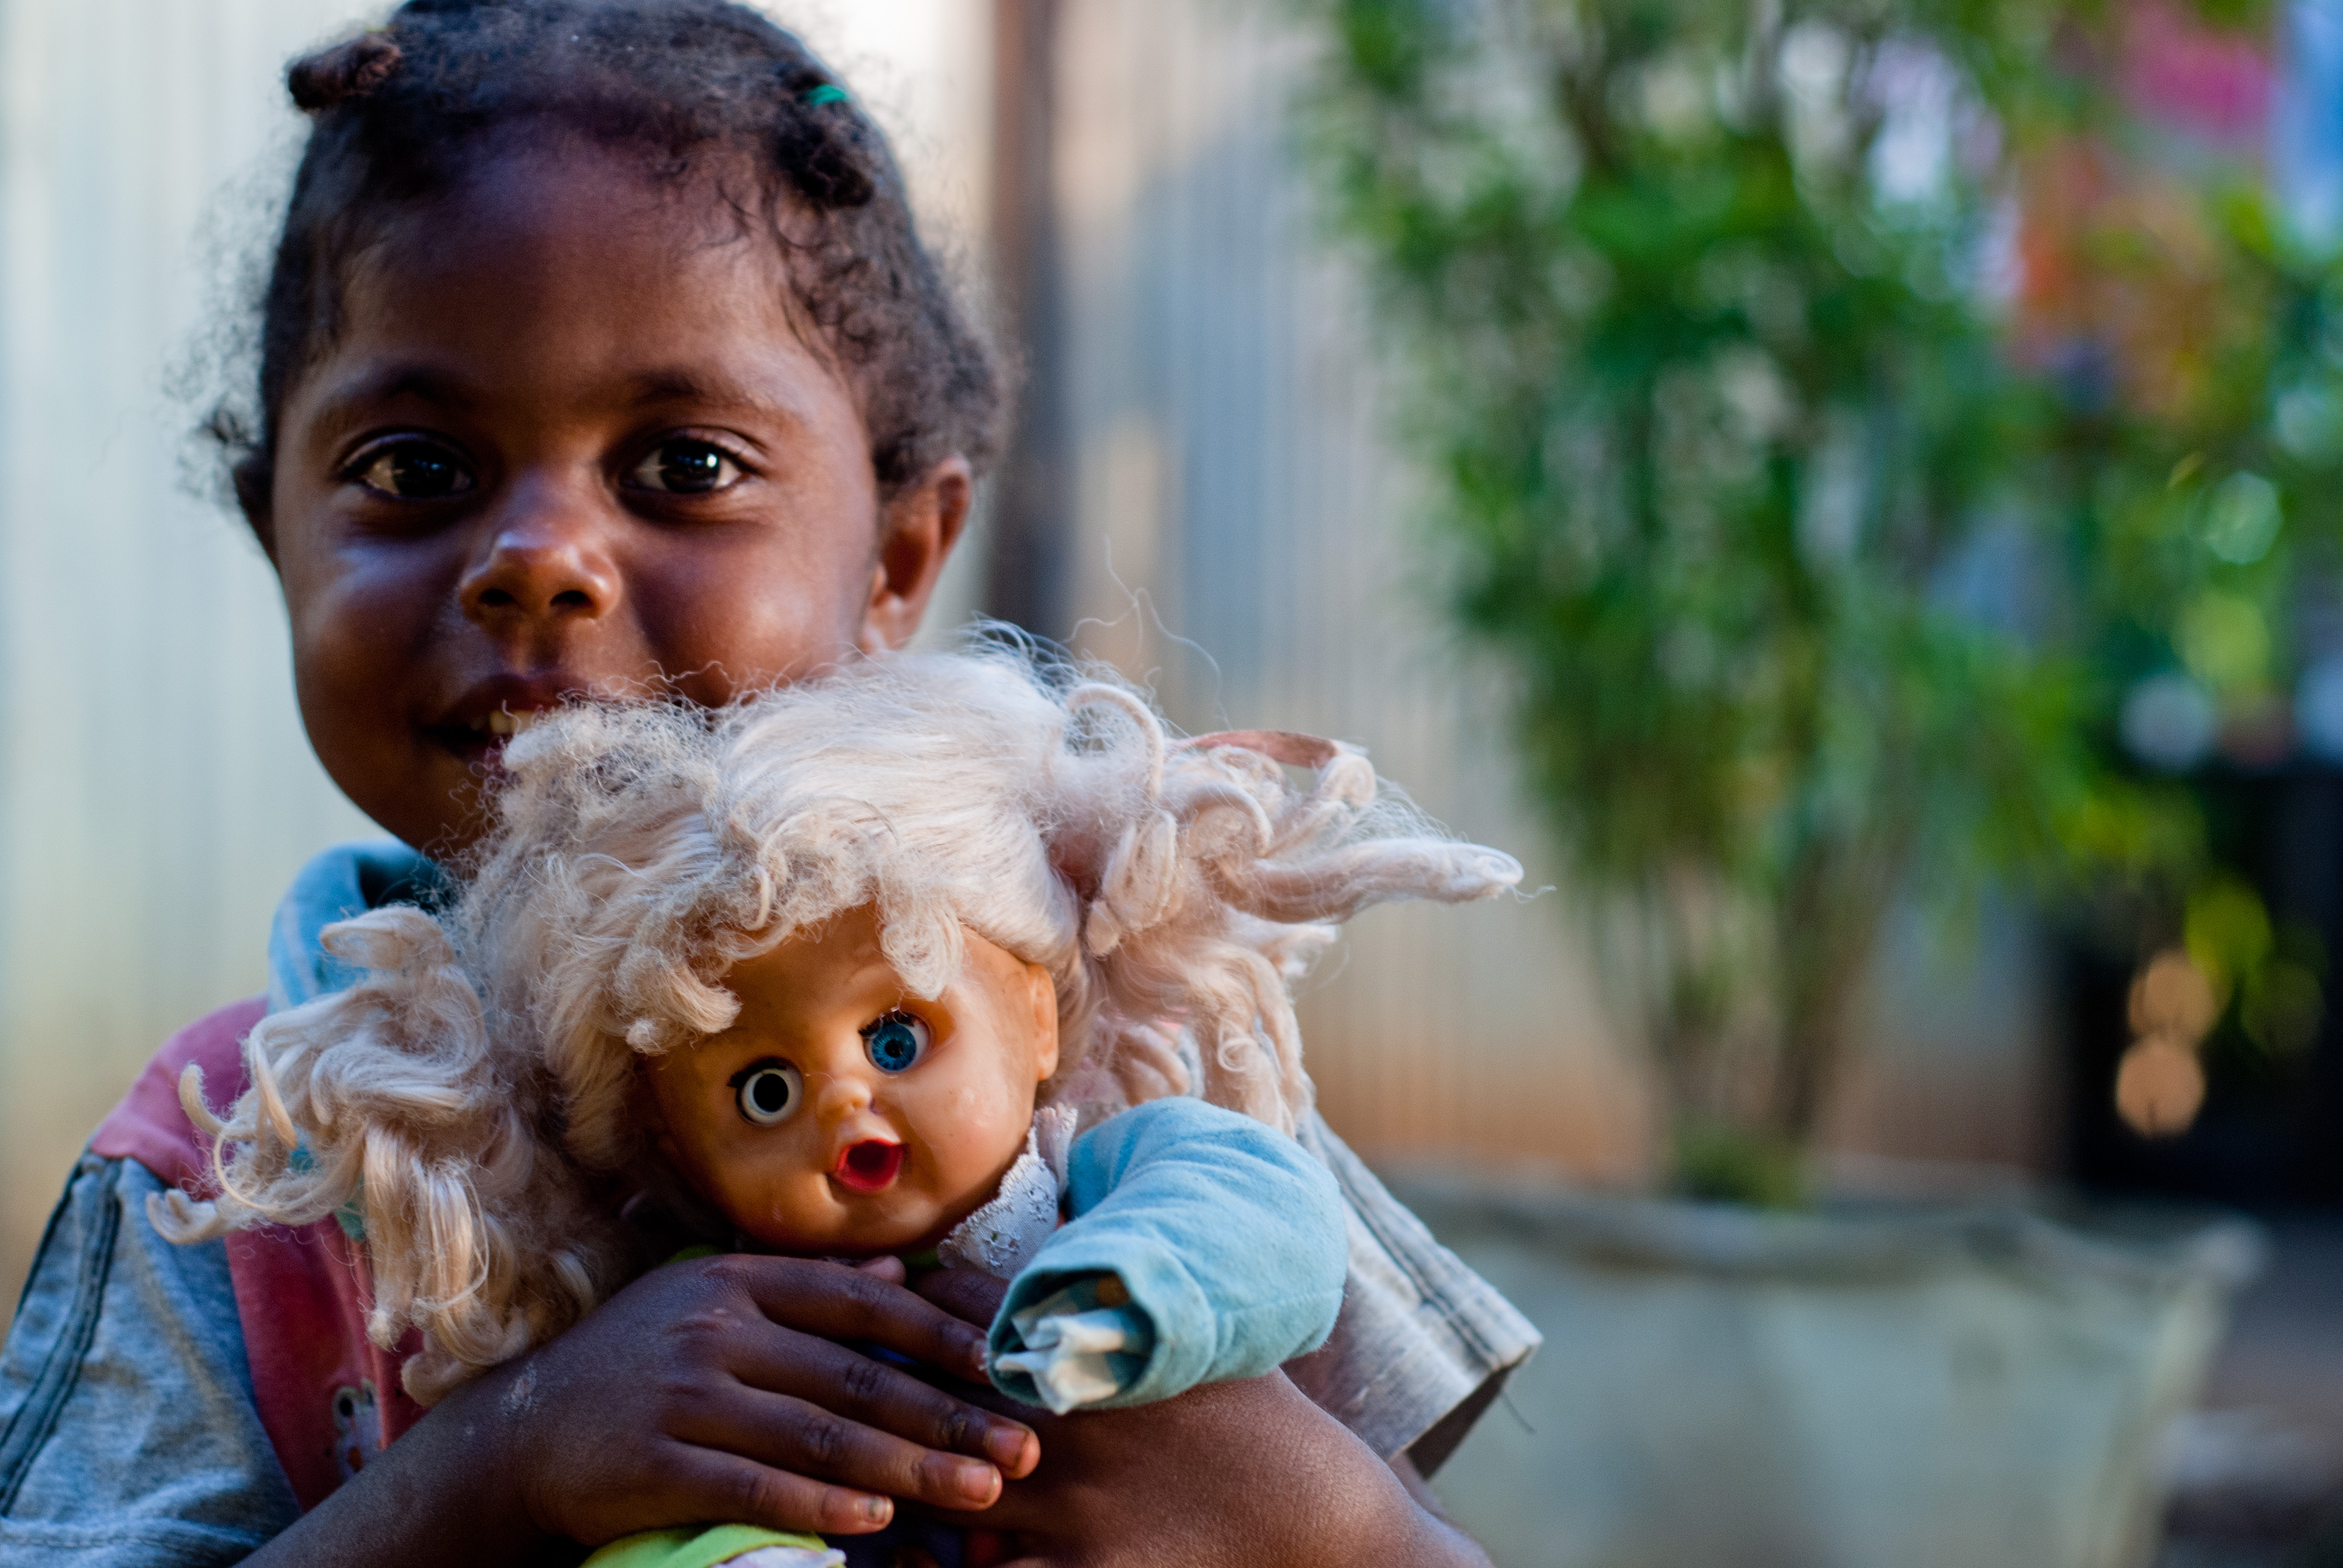 Girl With Doll Imagicity